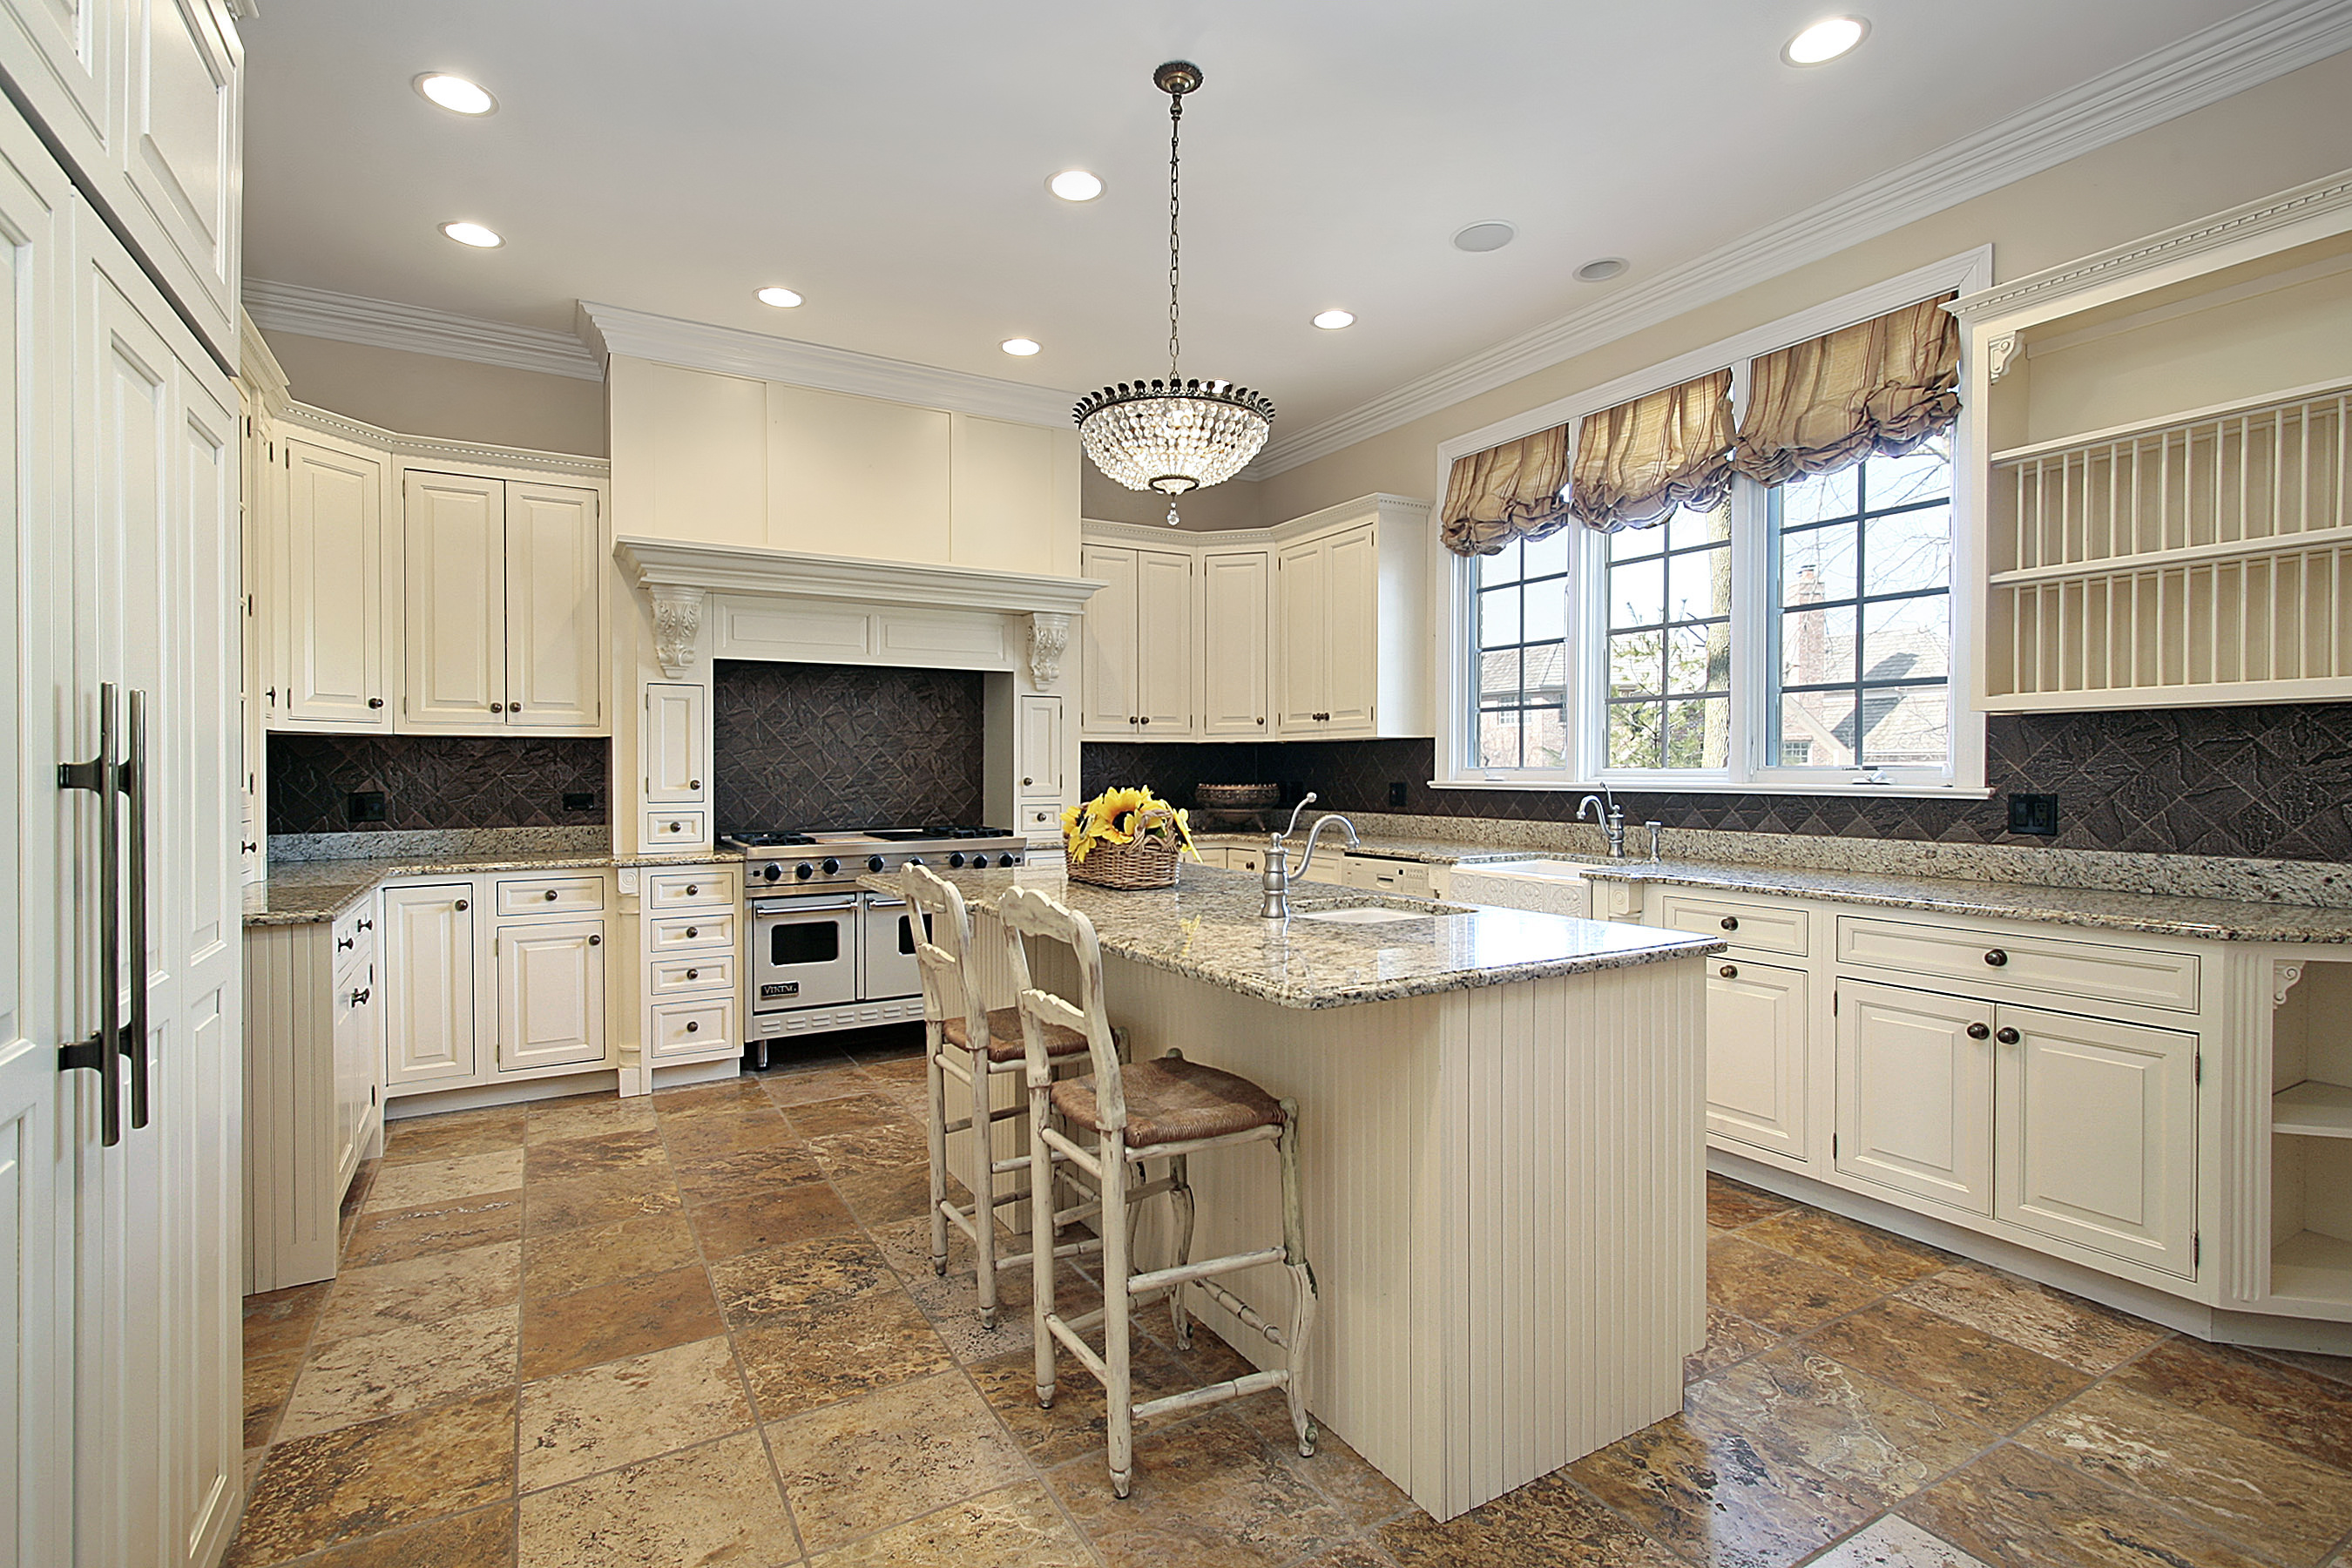 marble counters - Caring for Marble and Granite Countertops